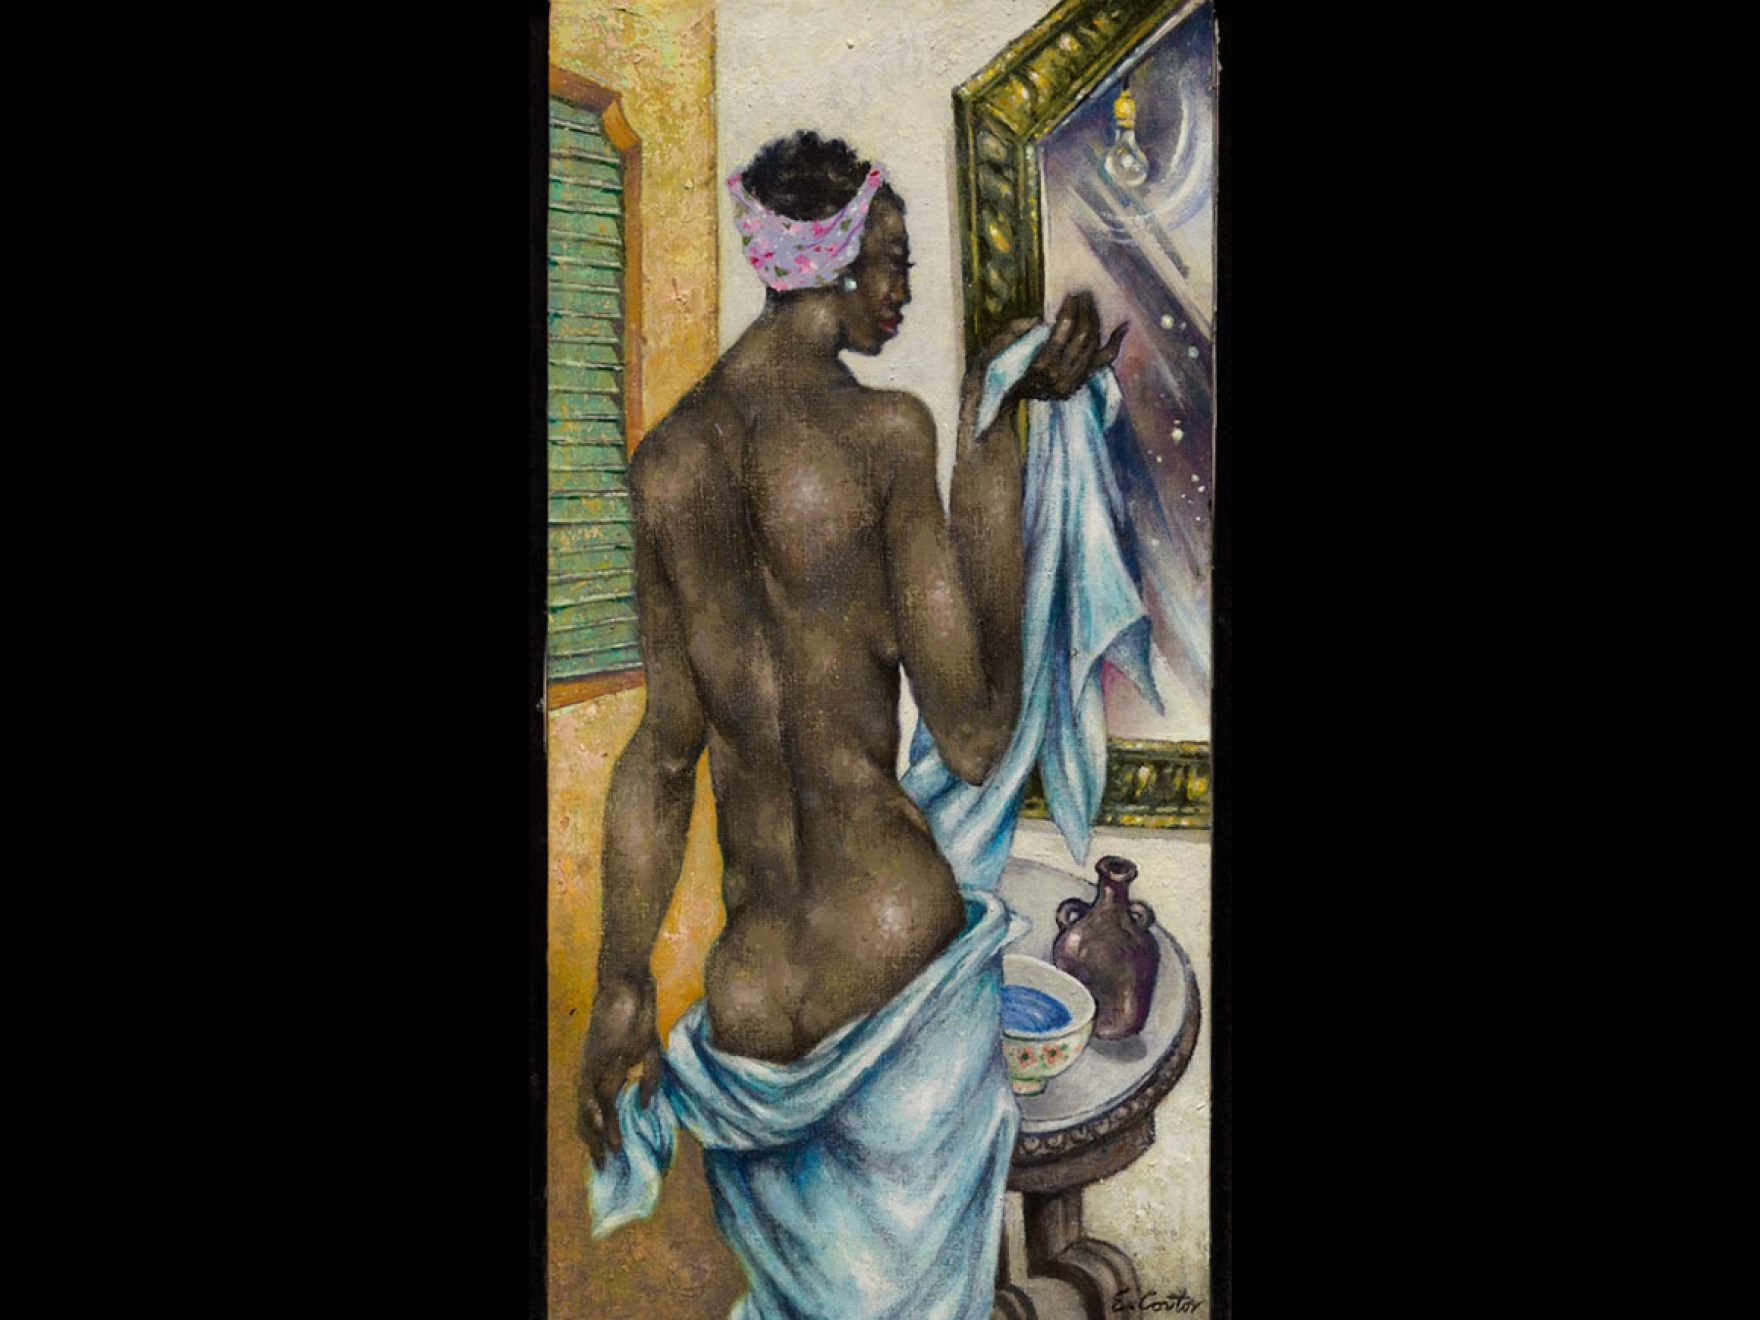 Eldzier Cortor's painting, Woman with a Mirror III